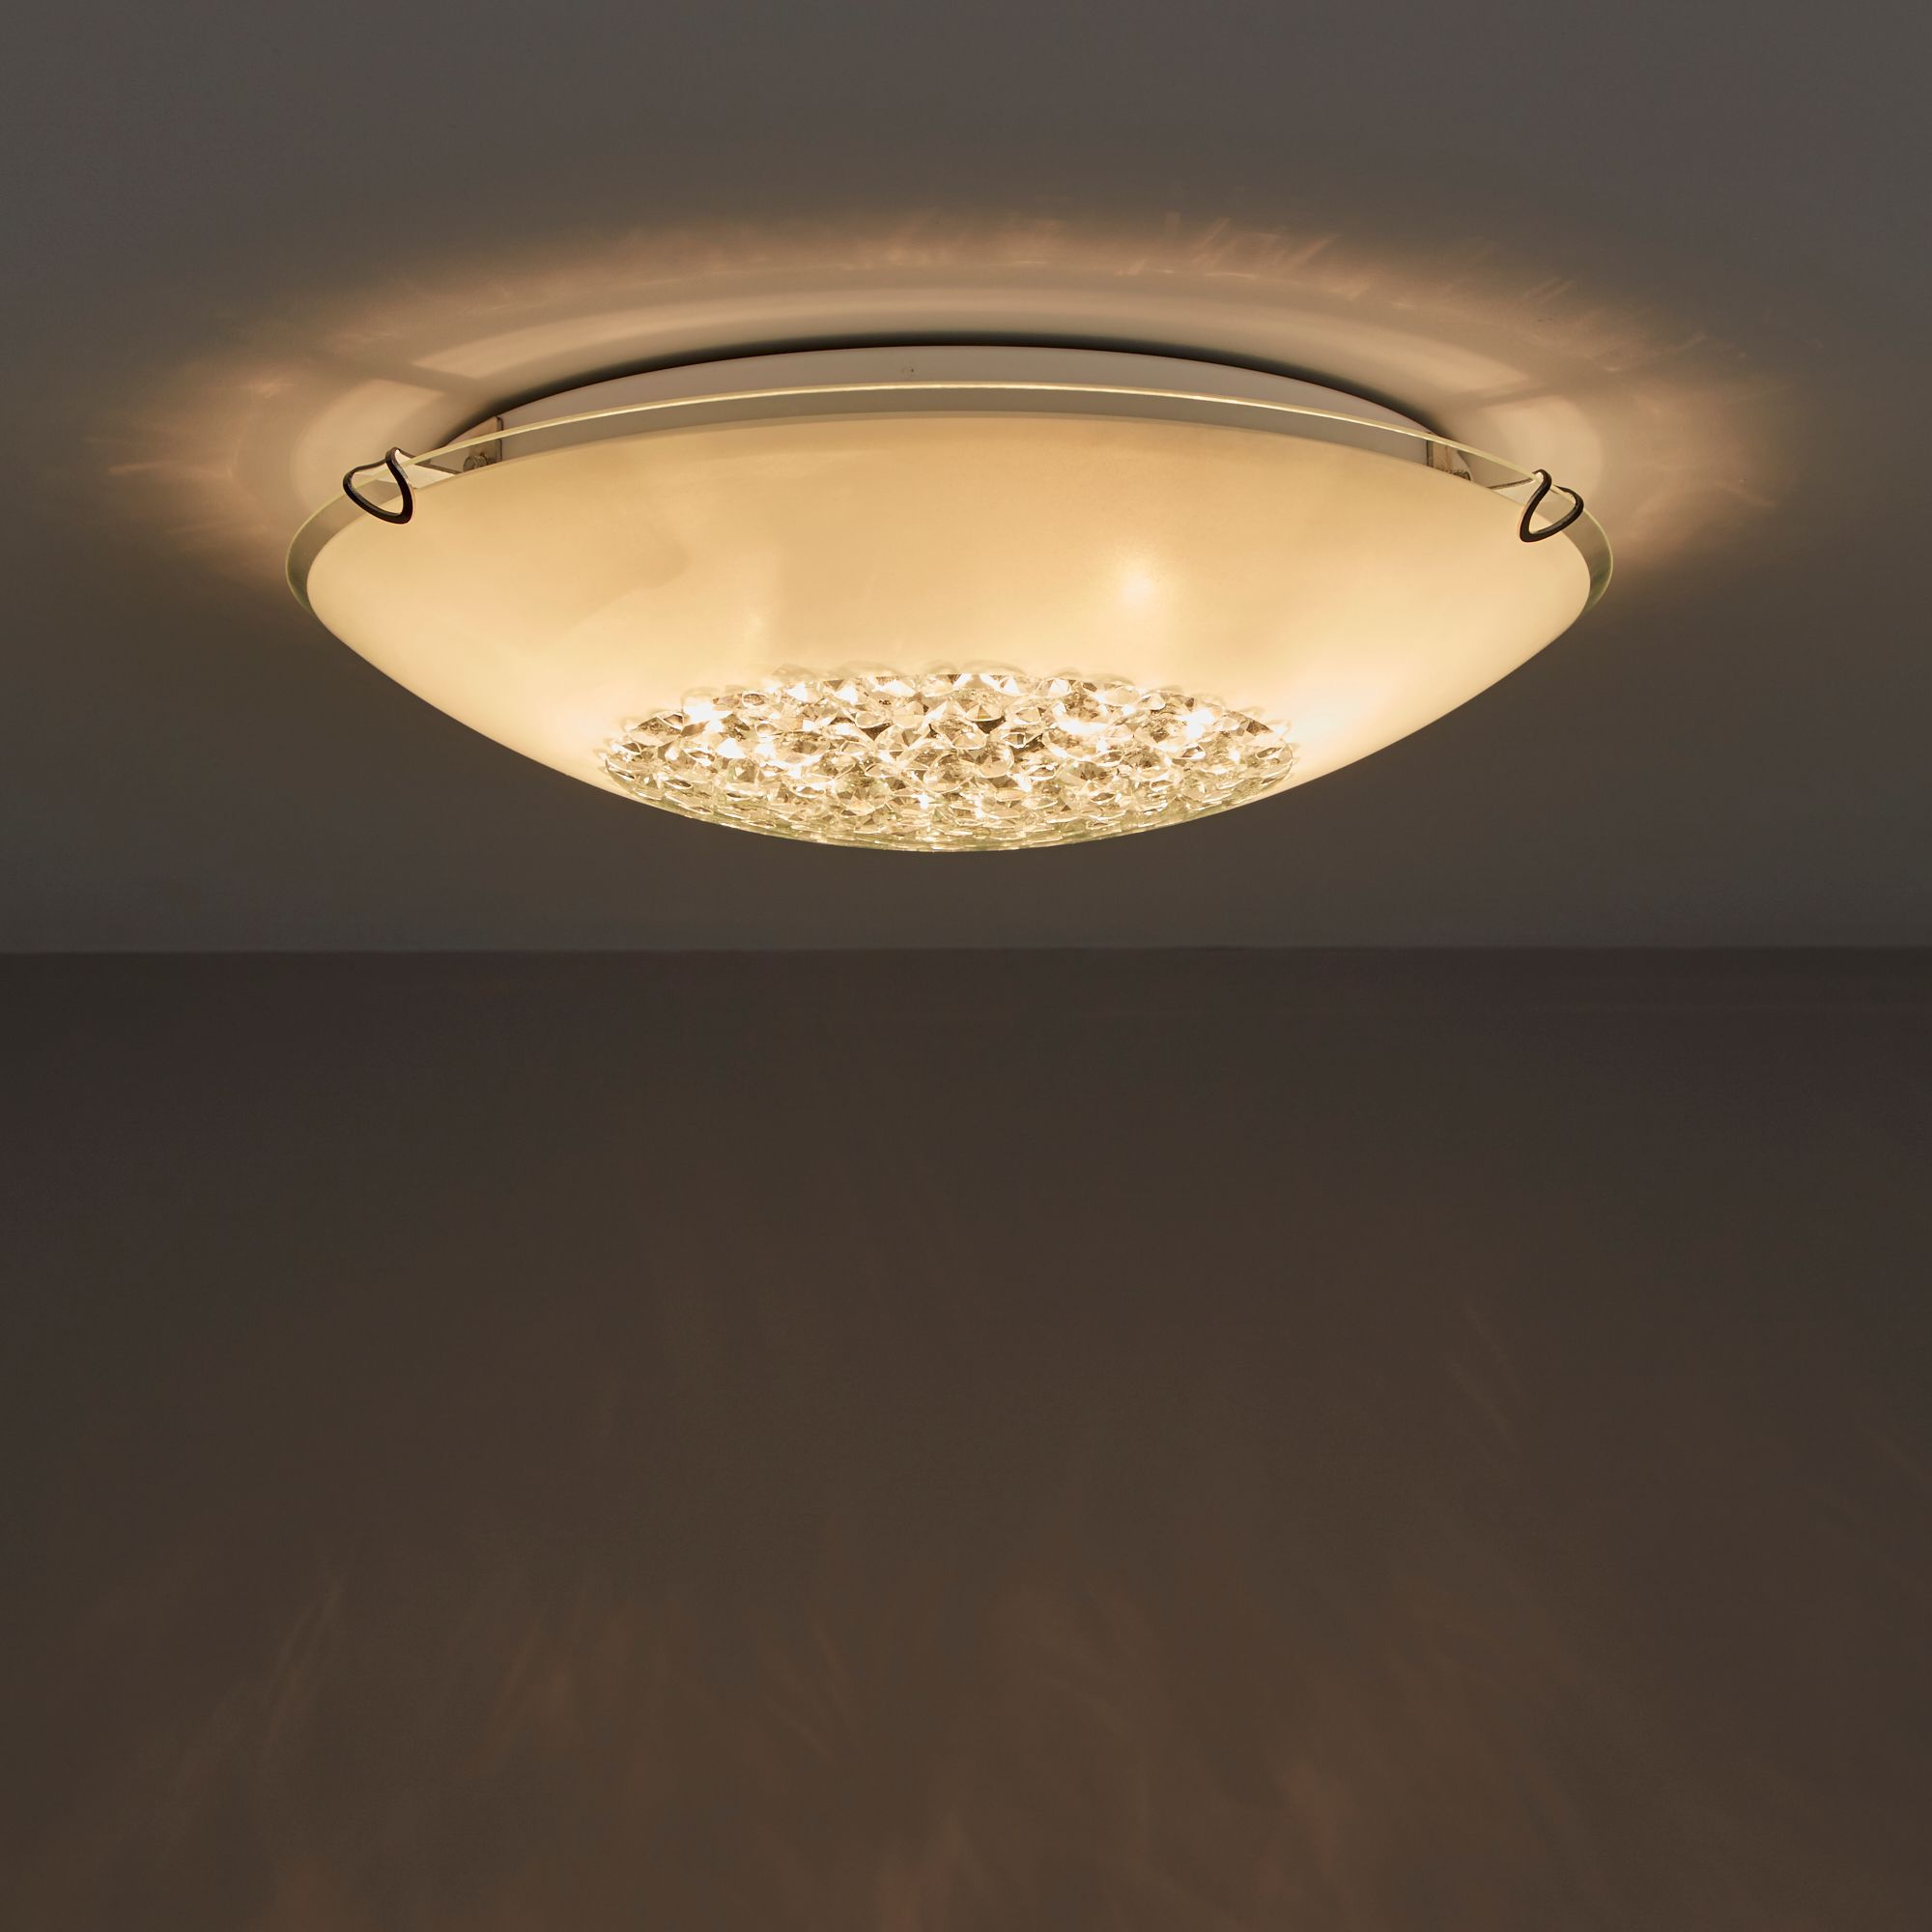 Gaia White 2 Lamp Ceiling light